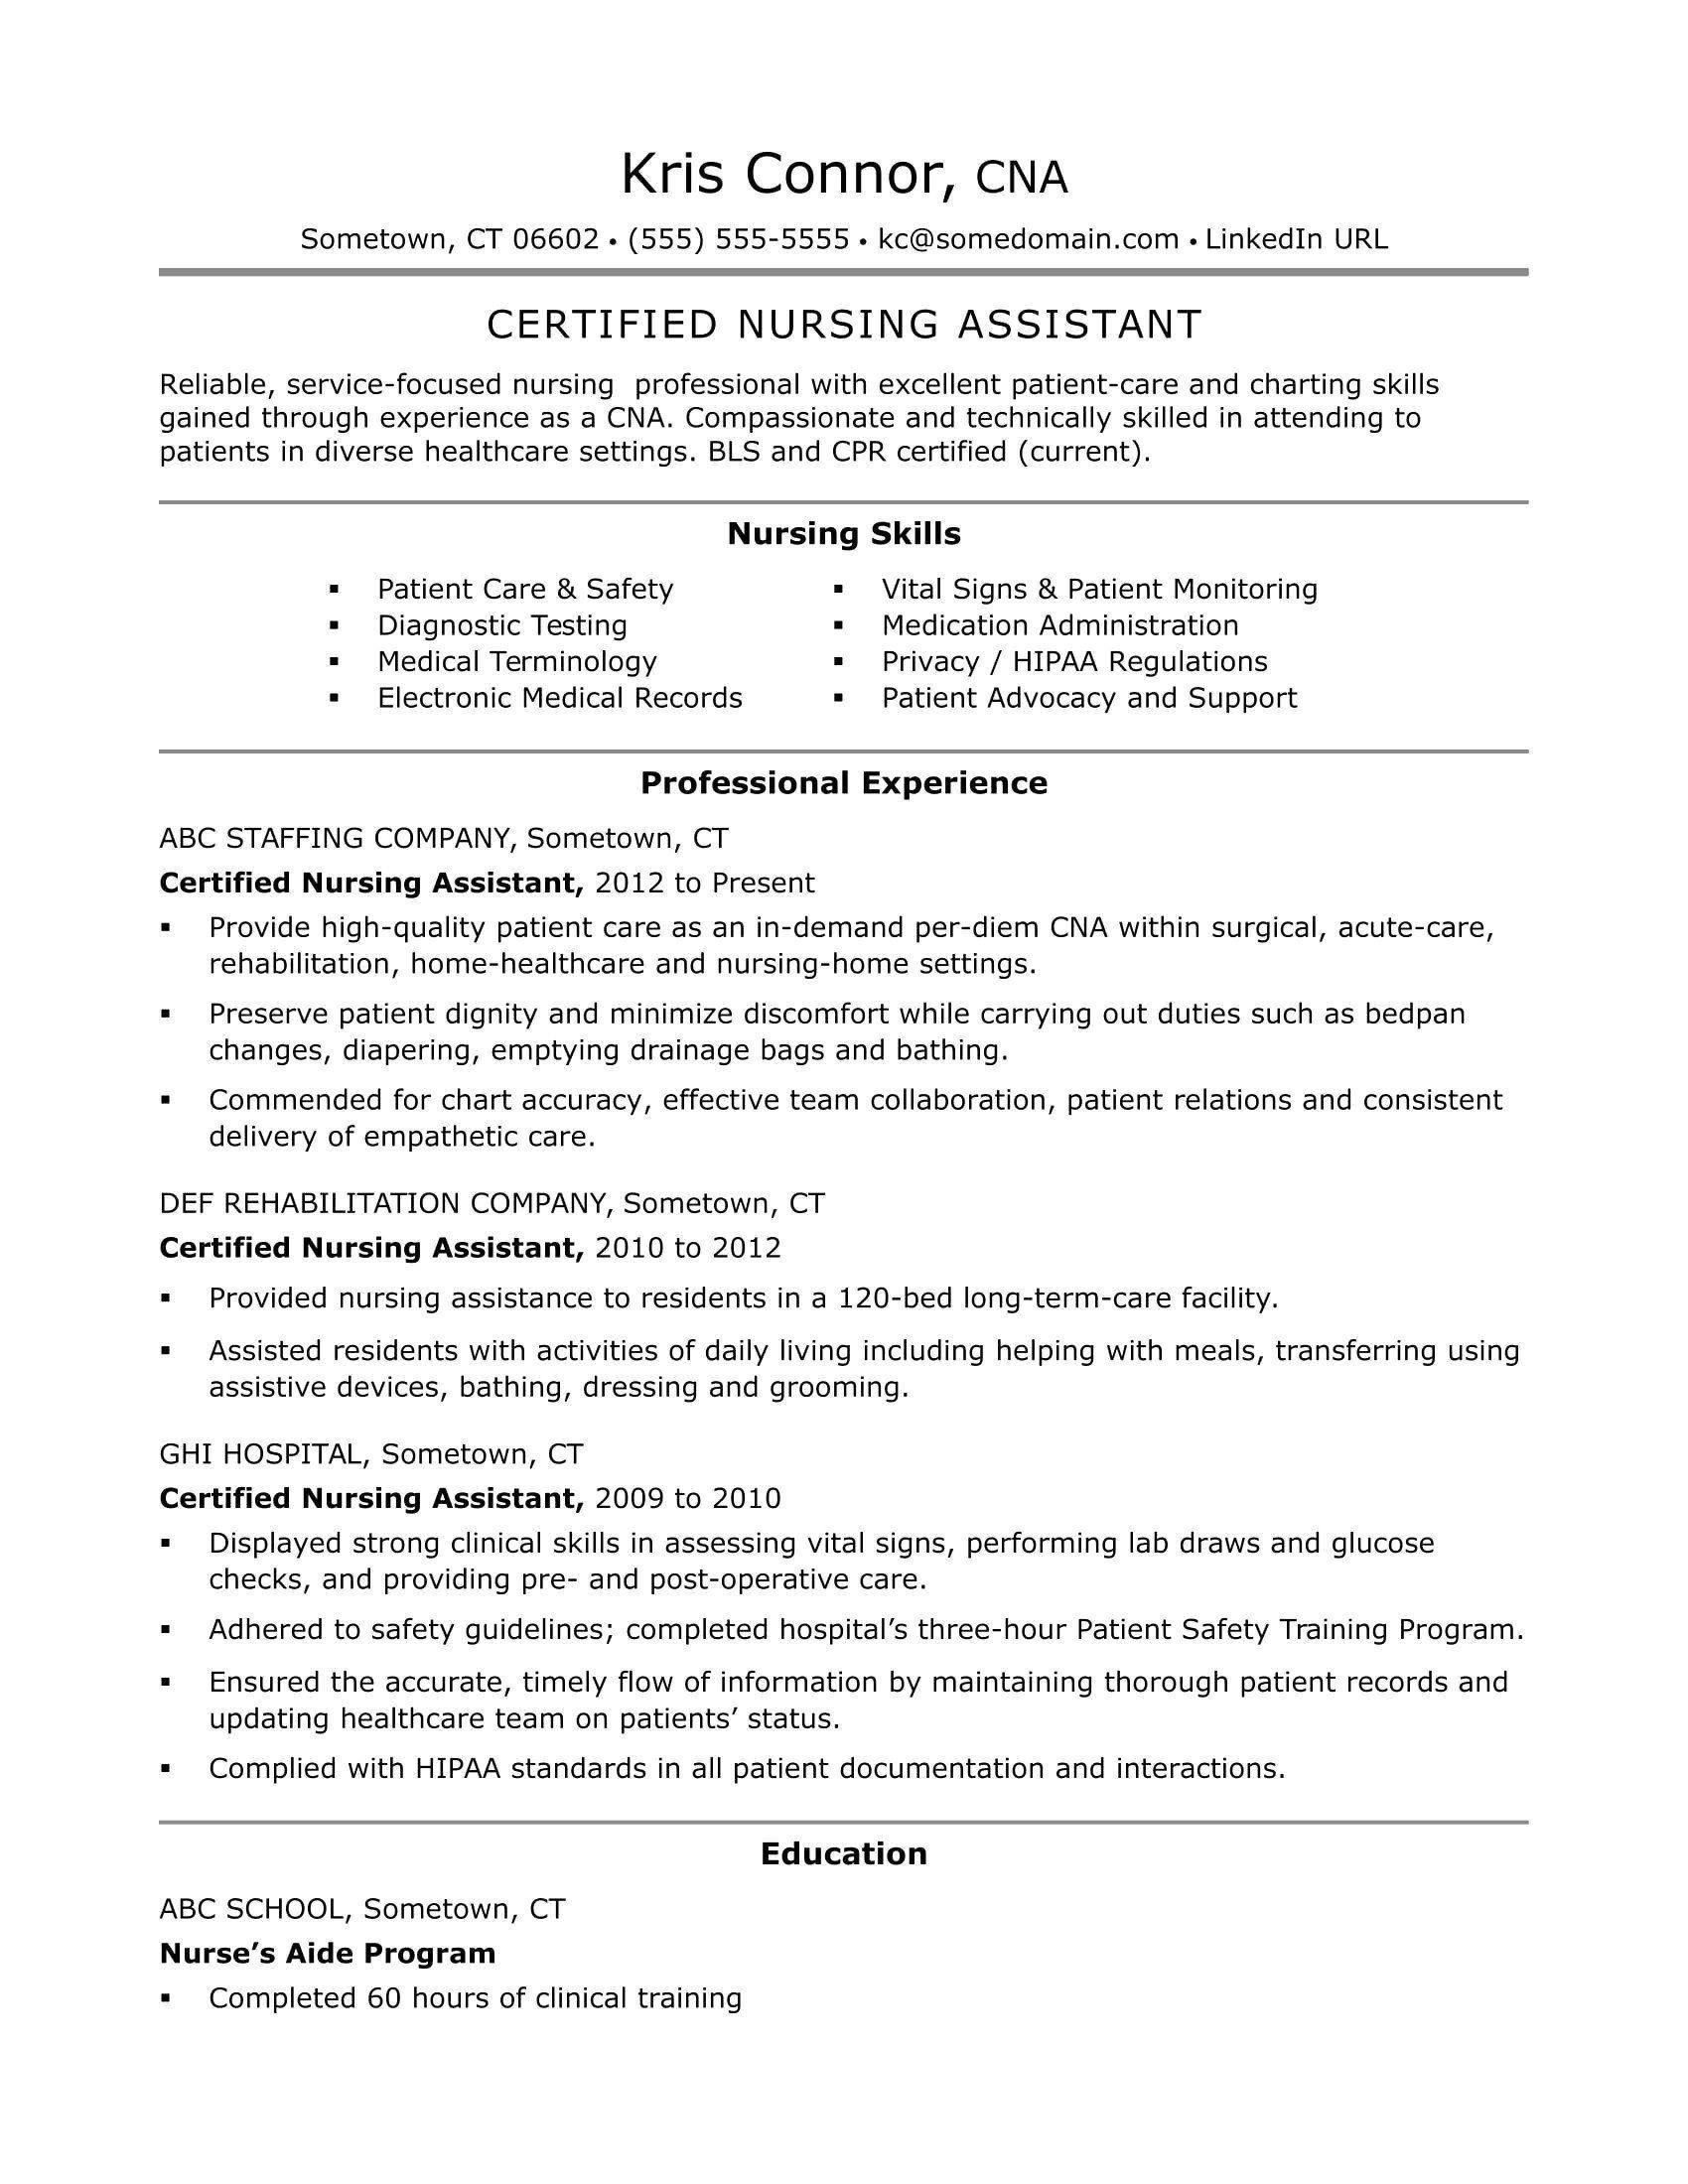 32 lovely additional information on resume in 2020